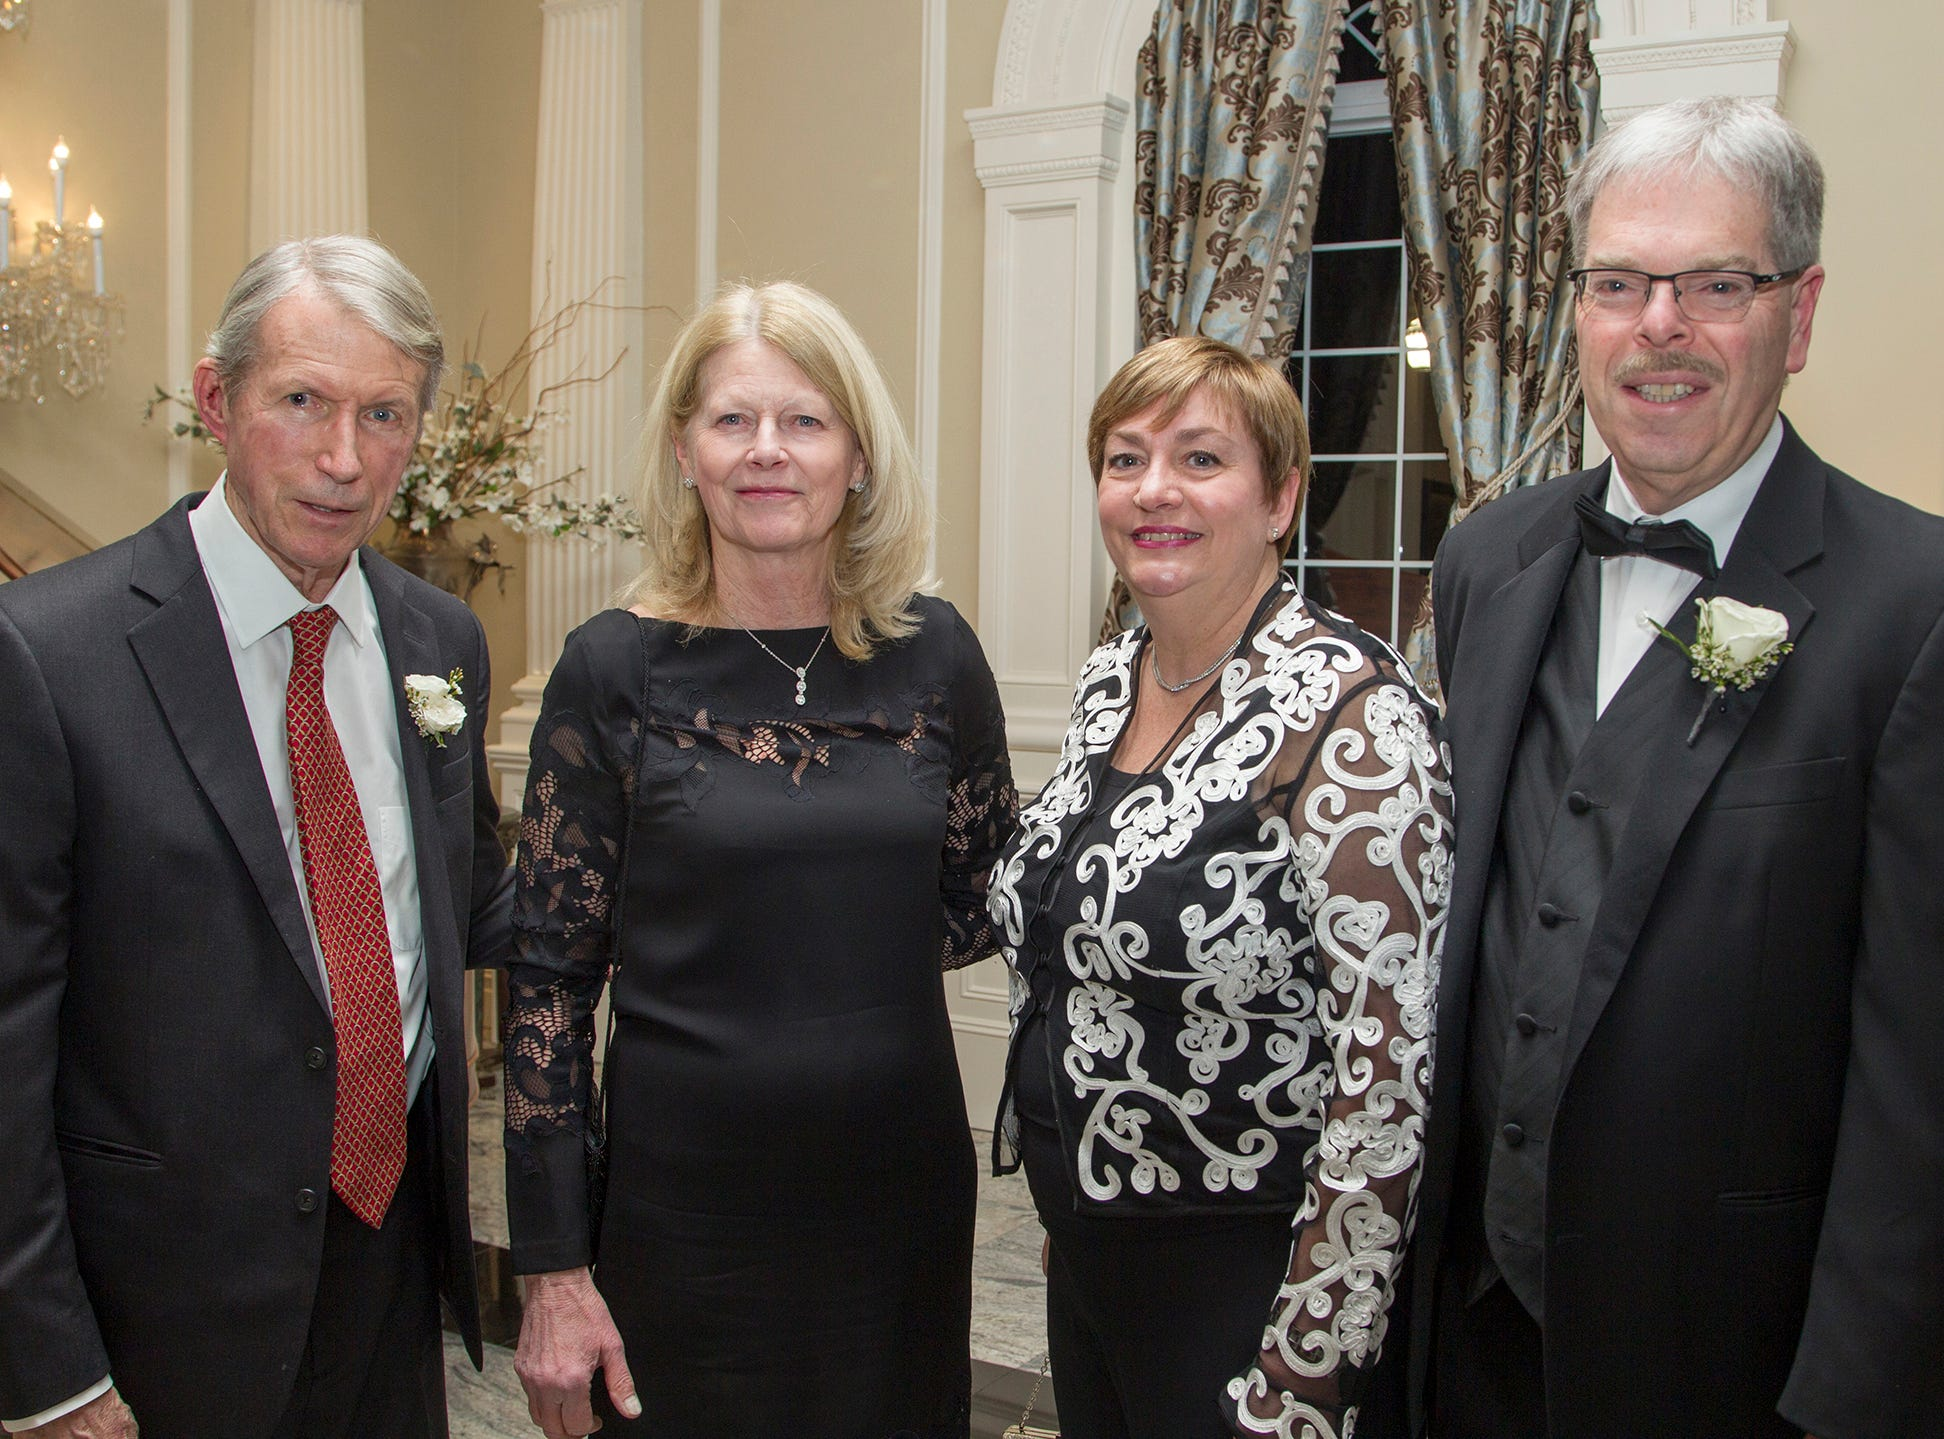 Peter and Pam McBride, Judy and Tom Shara. Ramapo College held its 37th Annual Distinguished Citizens Dinner at Rockleigh Country Club. 03/02/2019